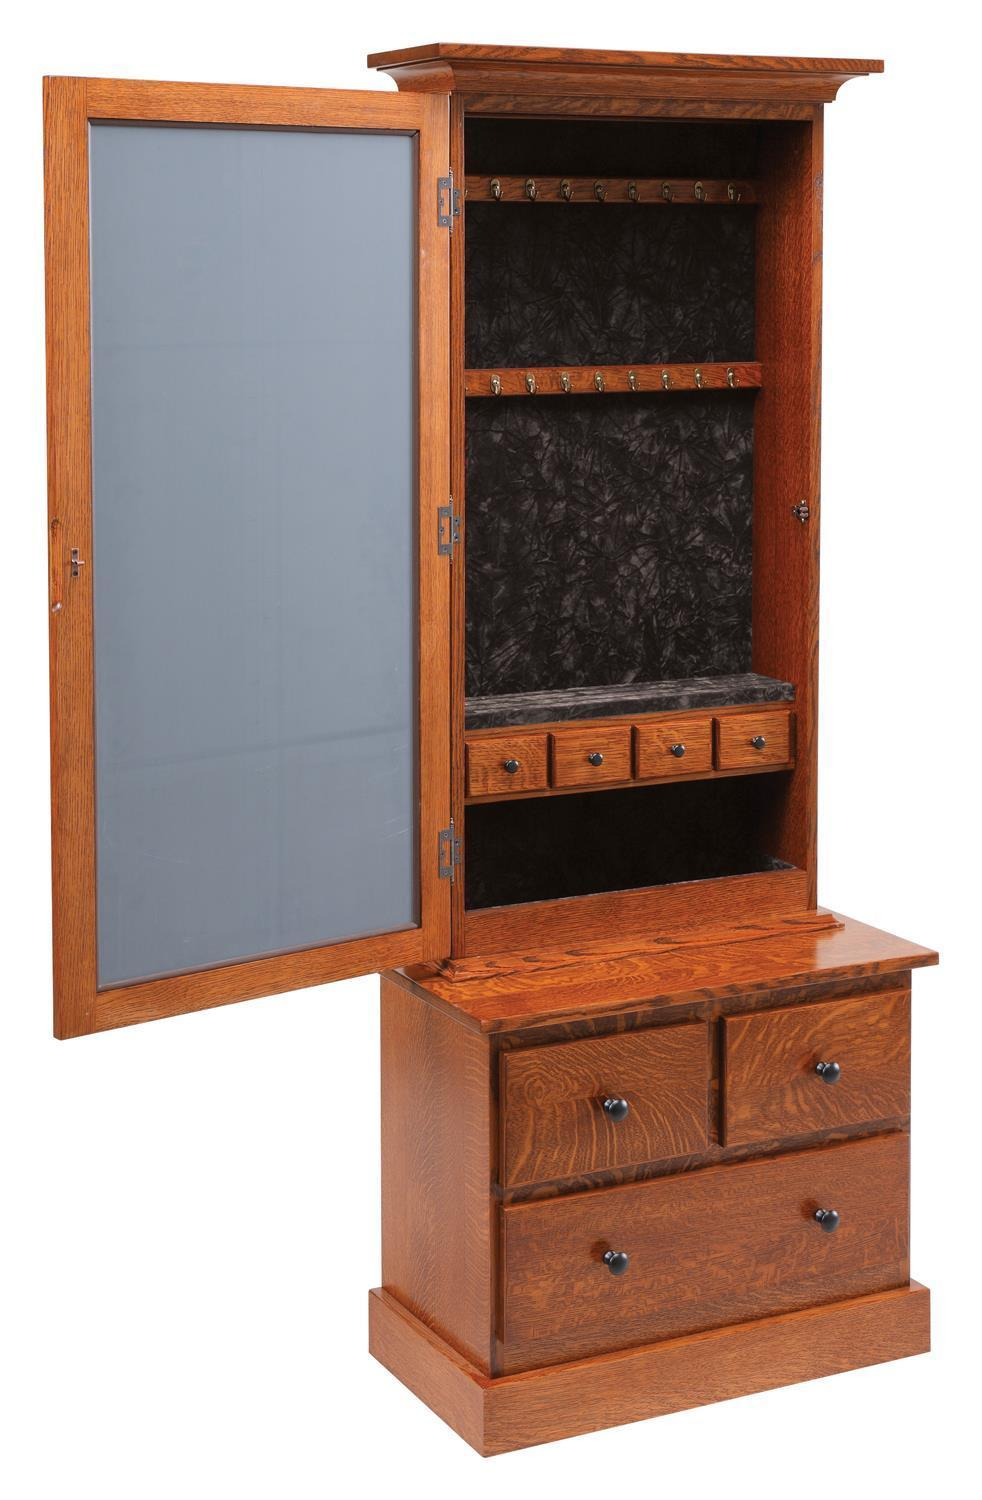 Mission Style Mirrored Jewelry Armoire from DutchCrafters Amish